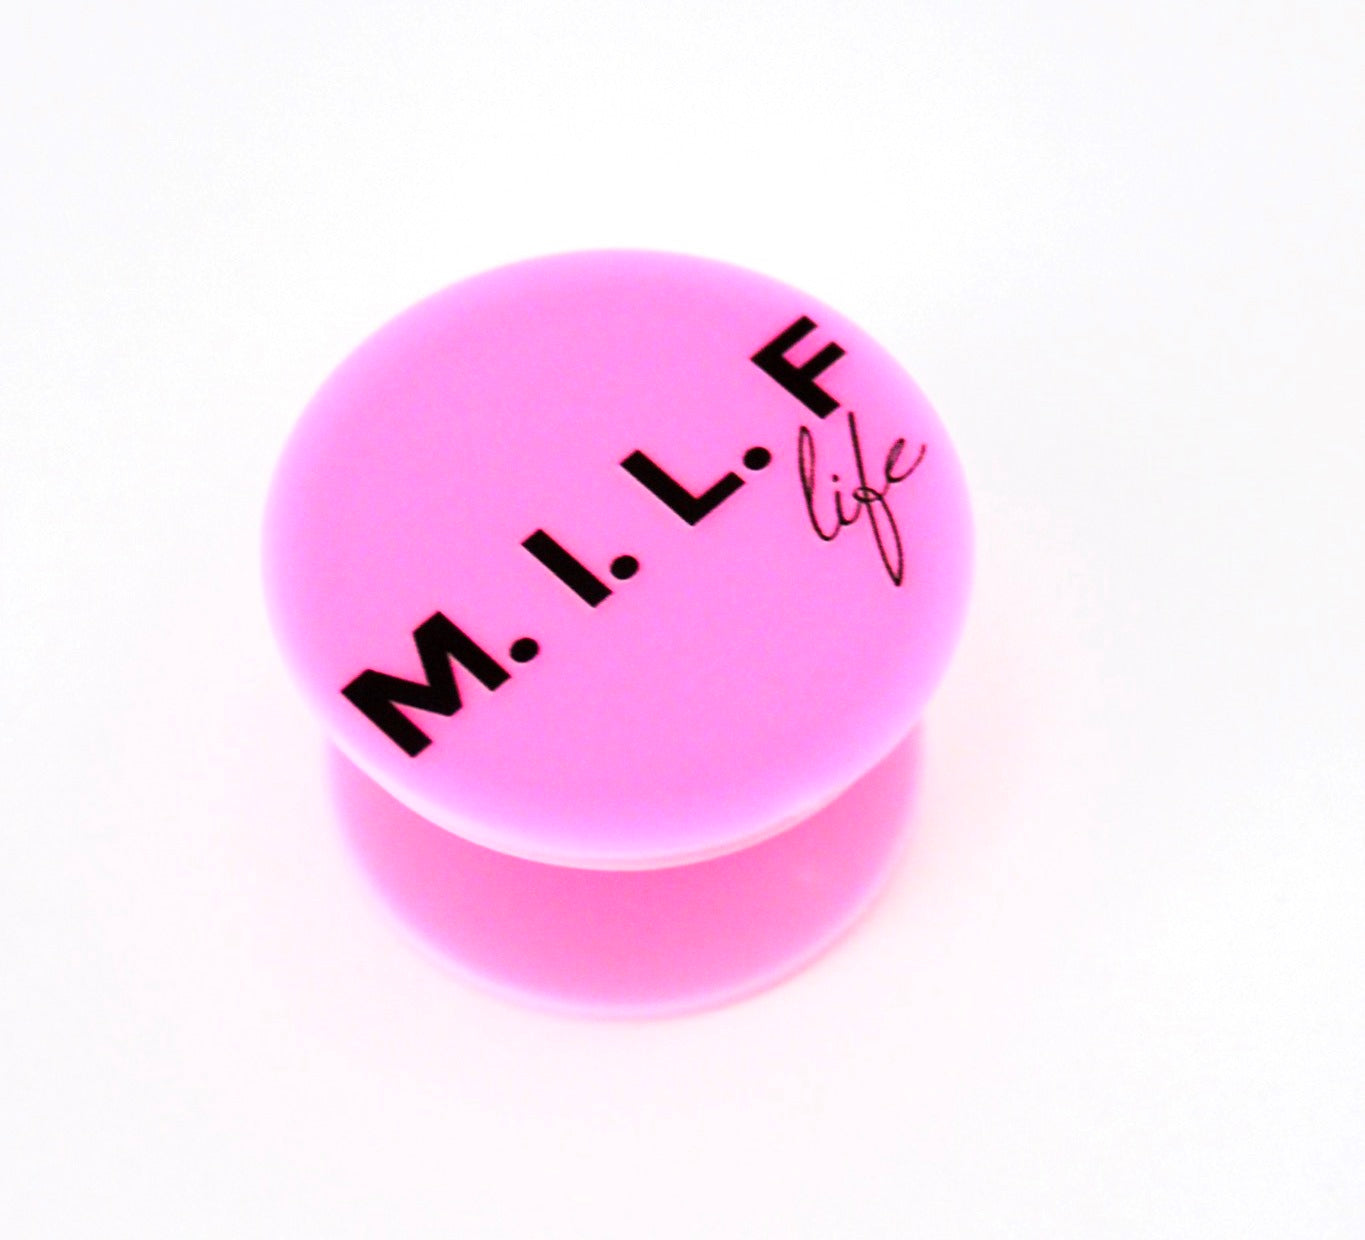 M.I.L.F life pop socket – Pink